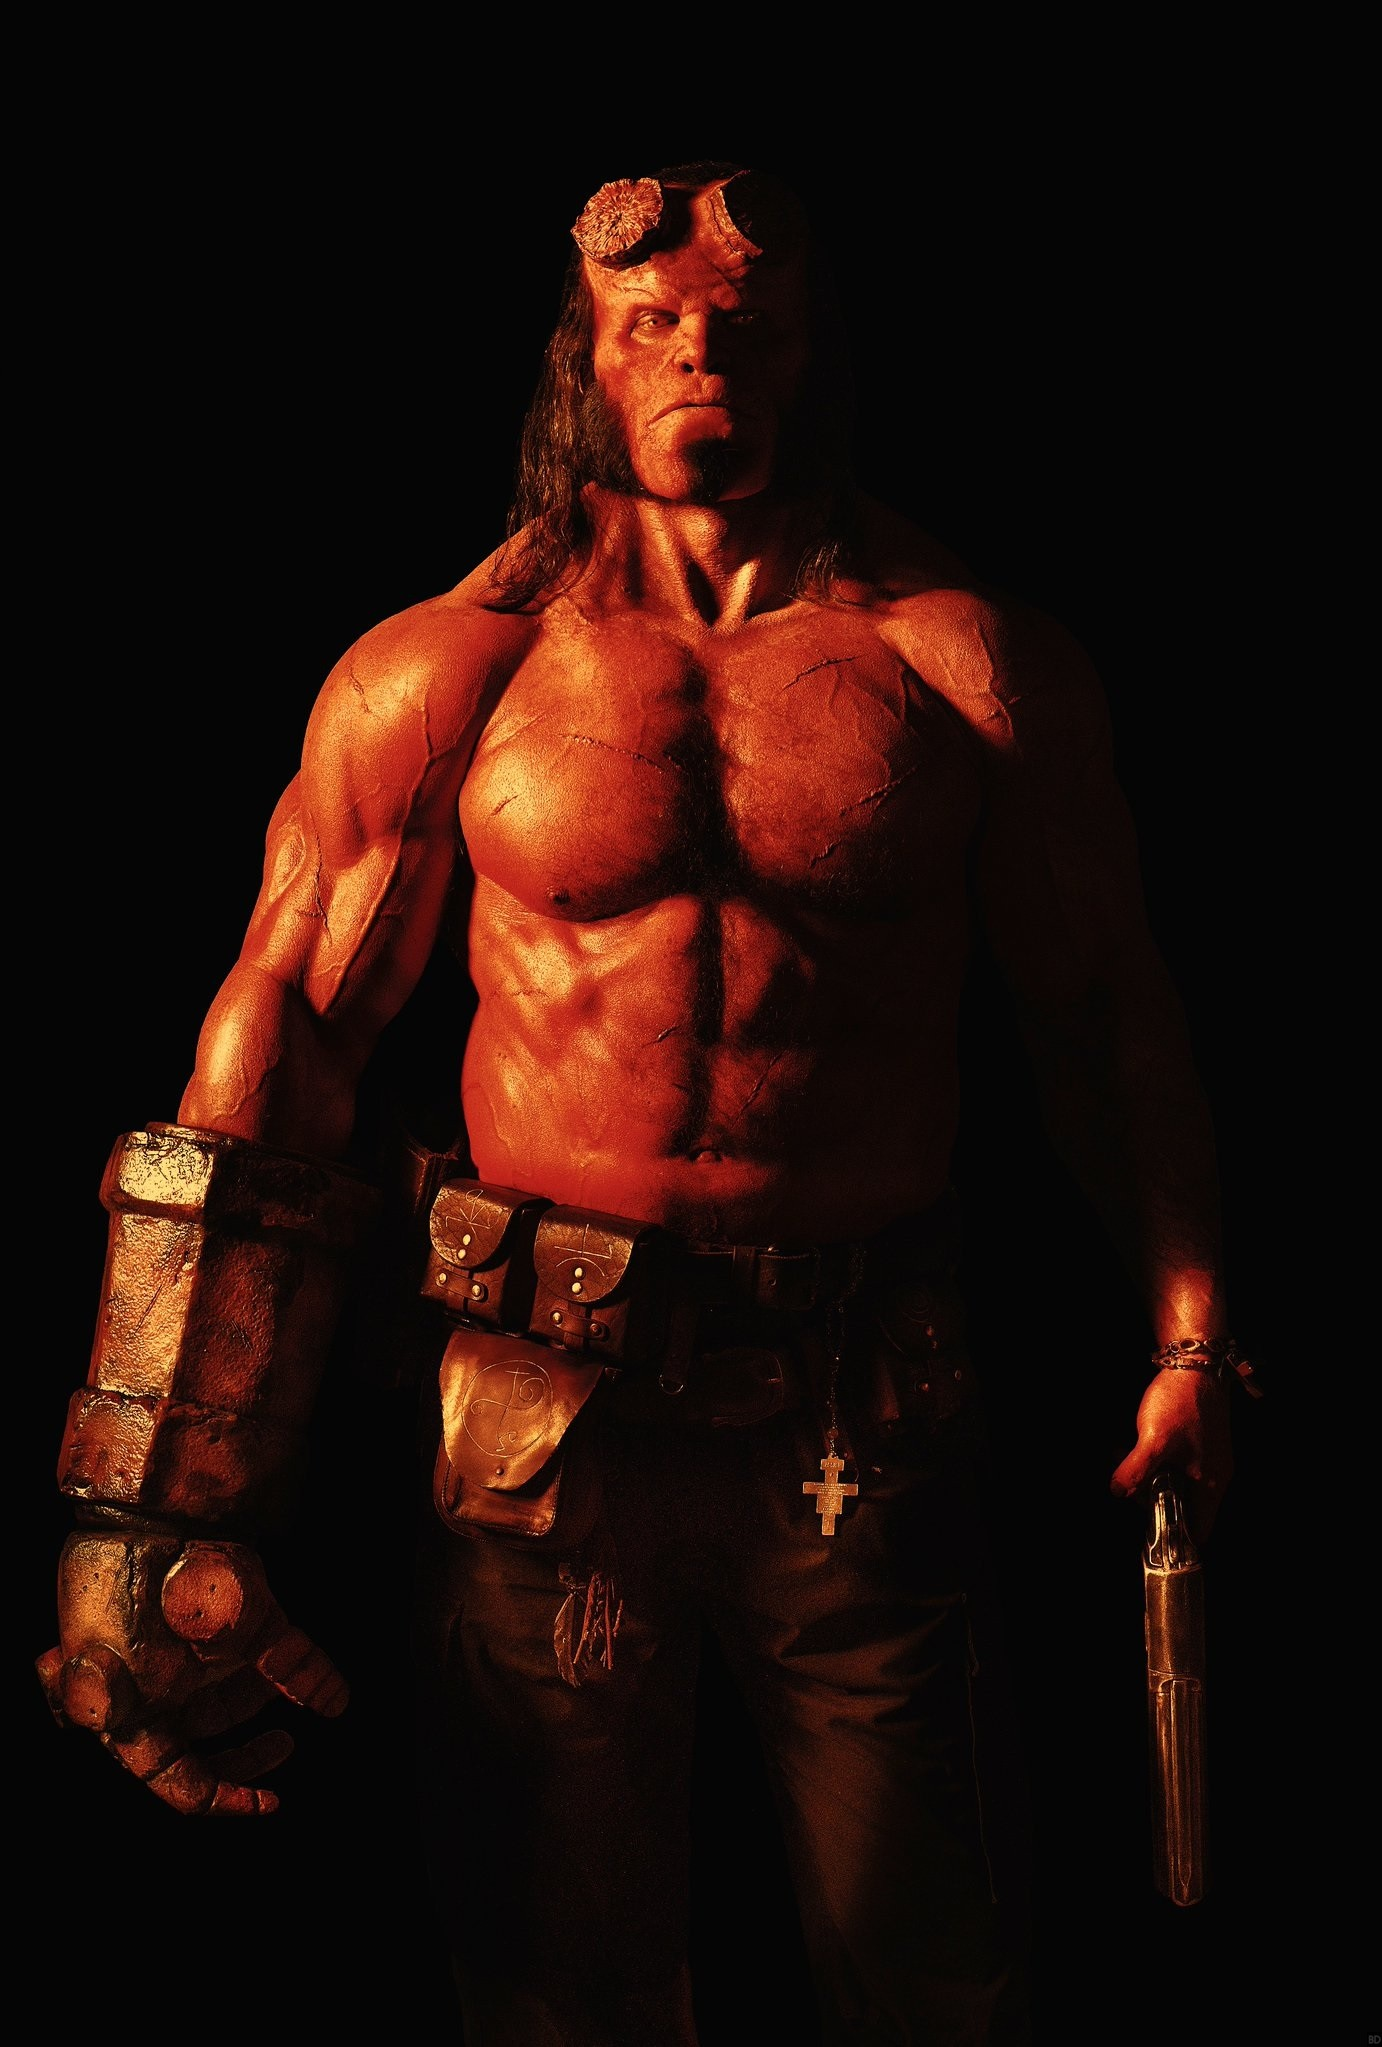 hellboy-david-harbour.jpg